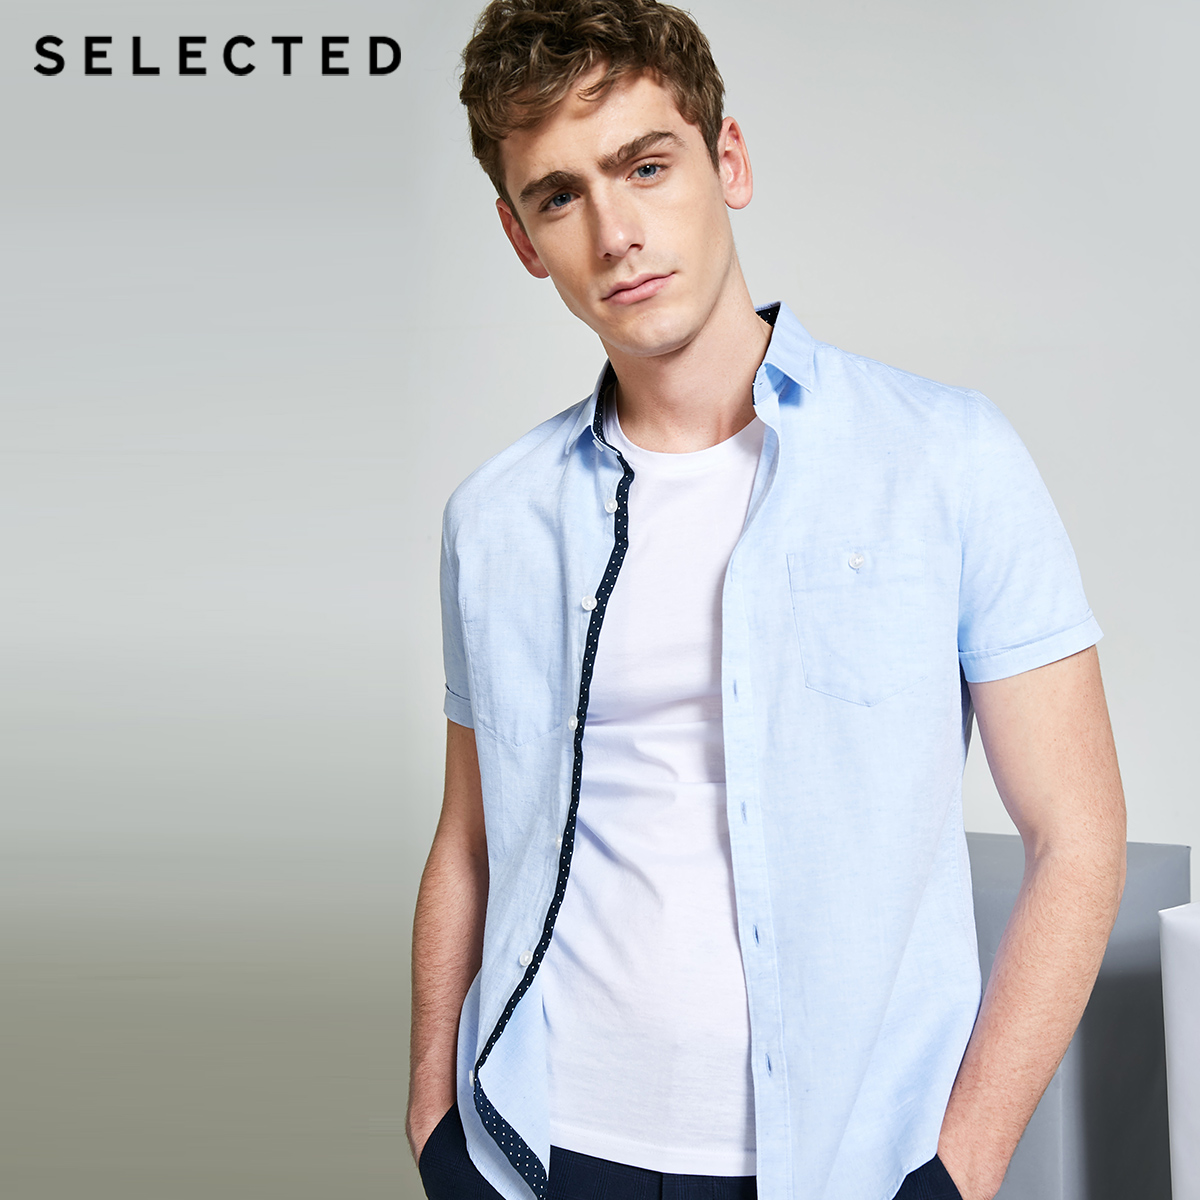 SELECTED Men's Cotton And Linen Slight Stretch Pure Color Pointed Collar Regular Fit Short-sleeved Shirt C|418204544